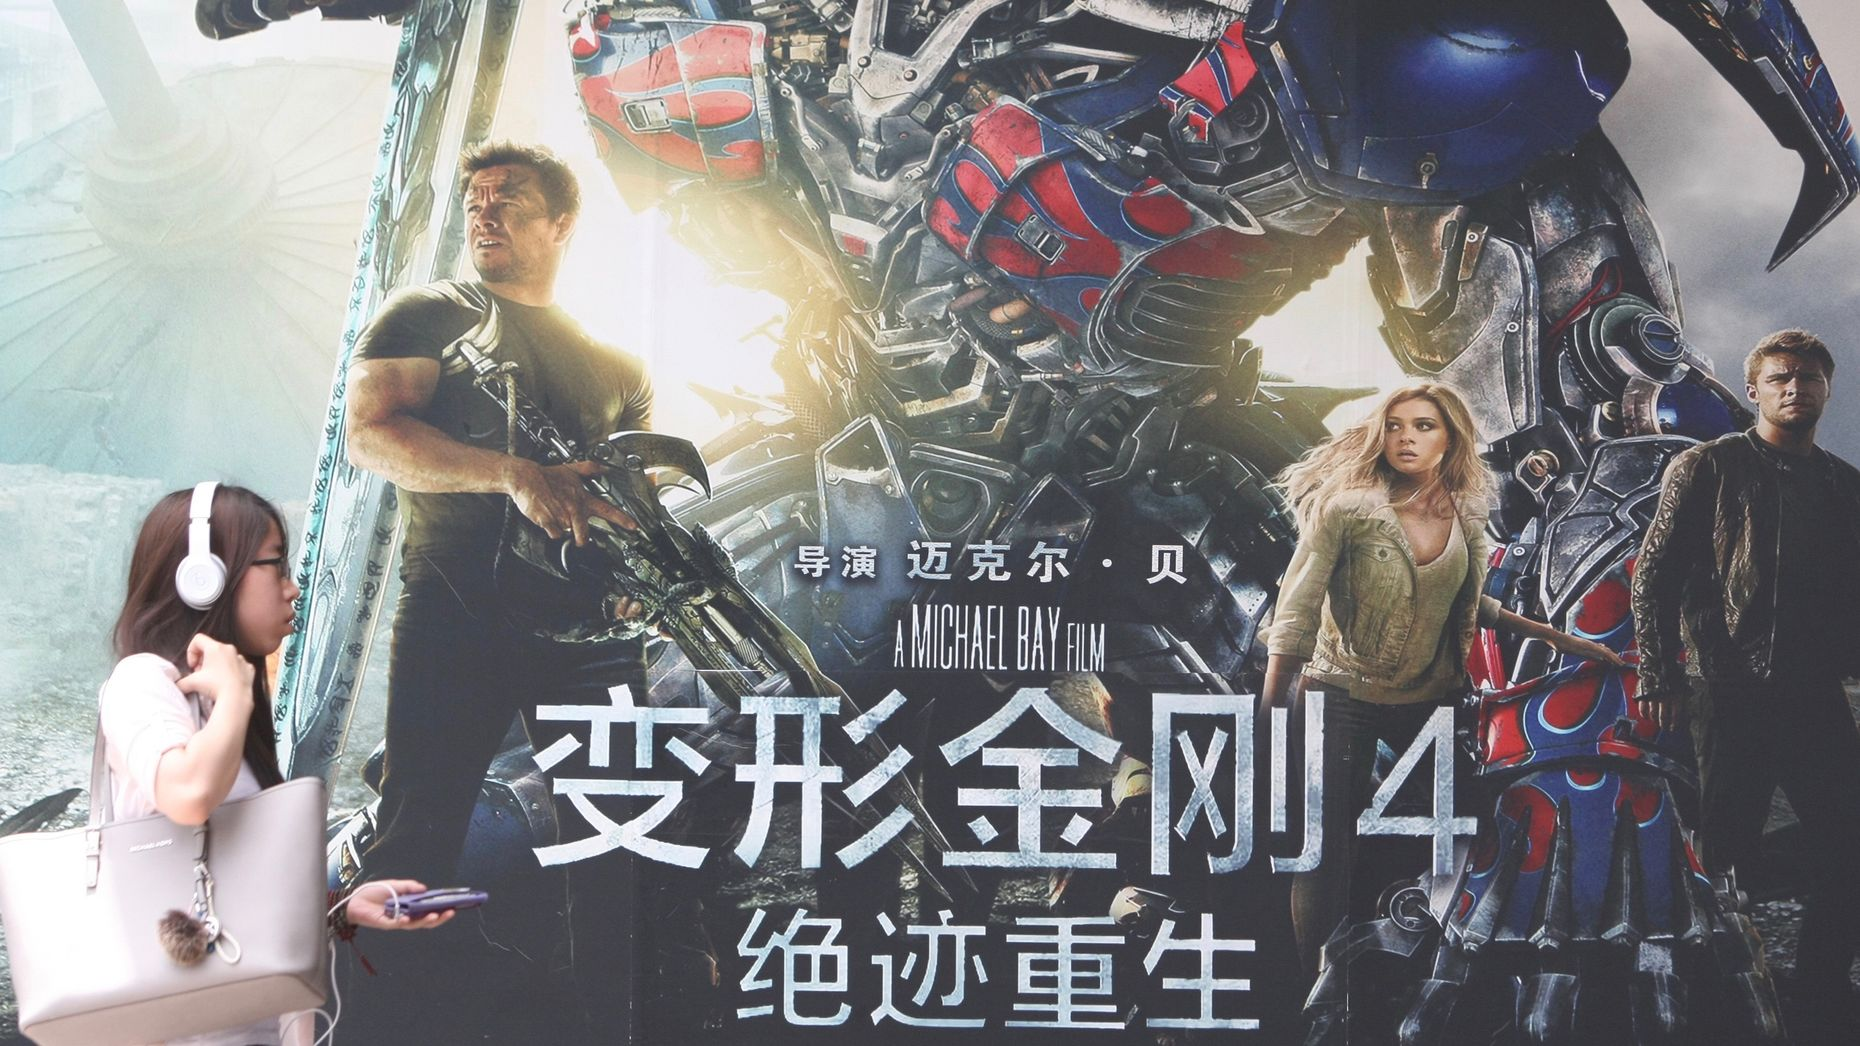 """A pedestrian in Shanghai walks past a poster for """"Transformers: Age of Extinction"""" in 2014. Photo by AP."""